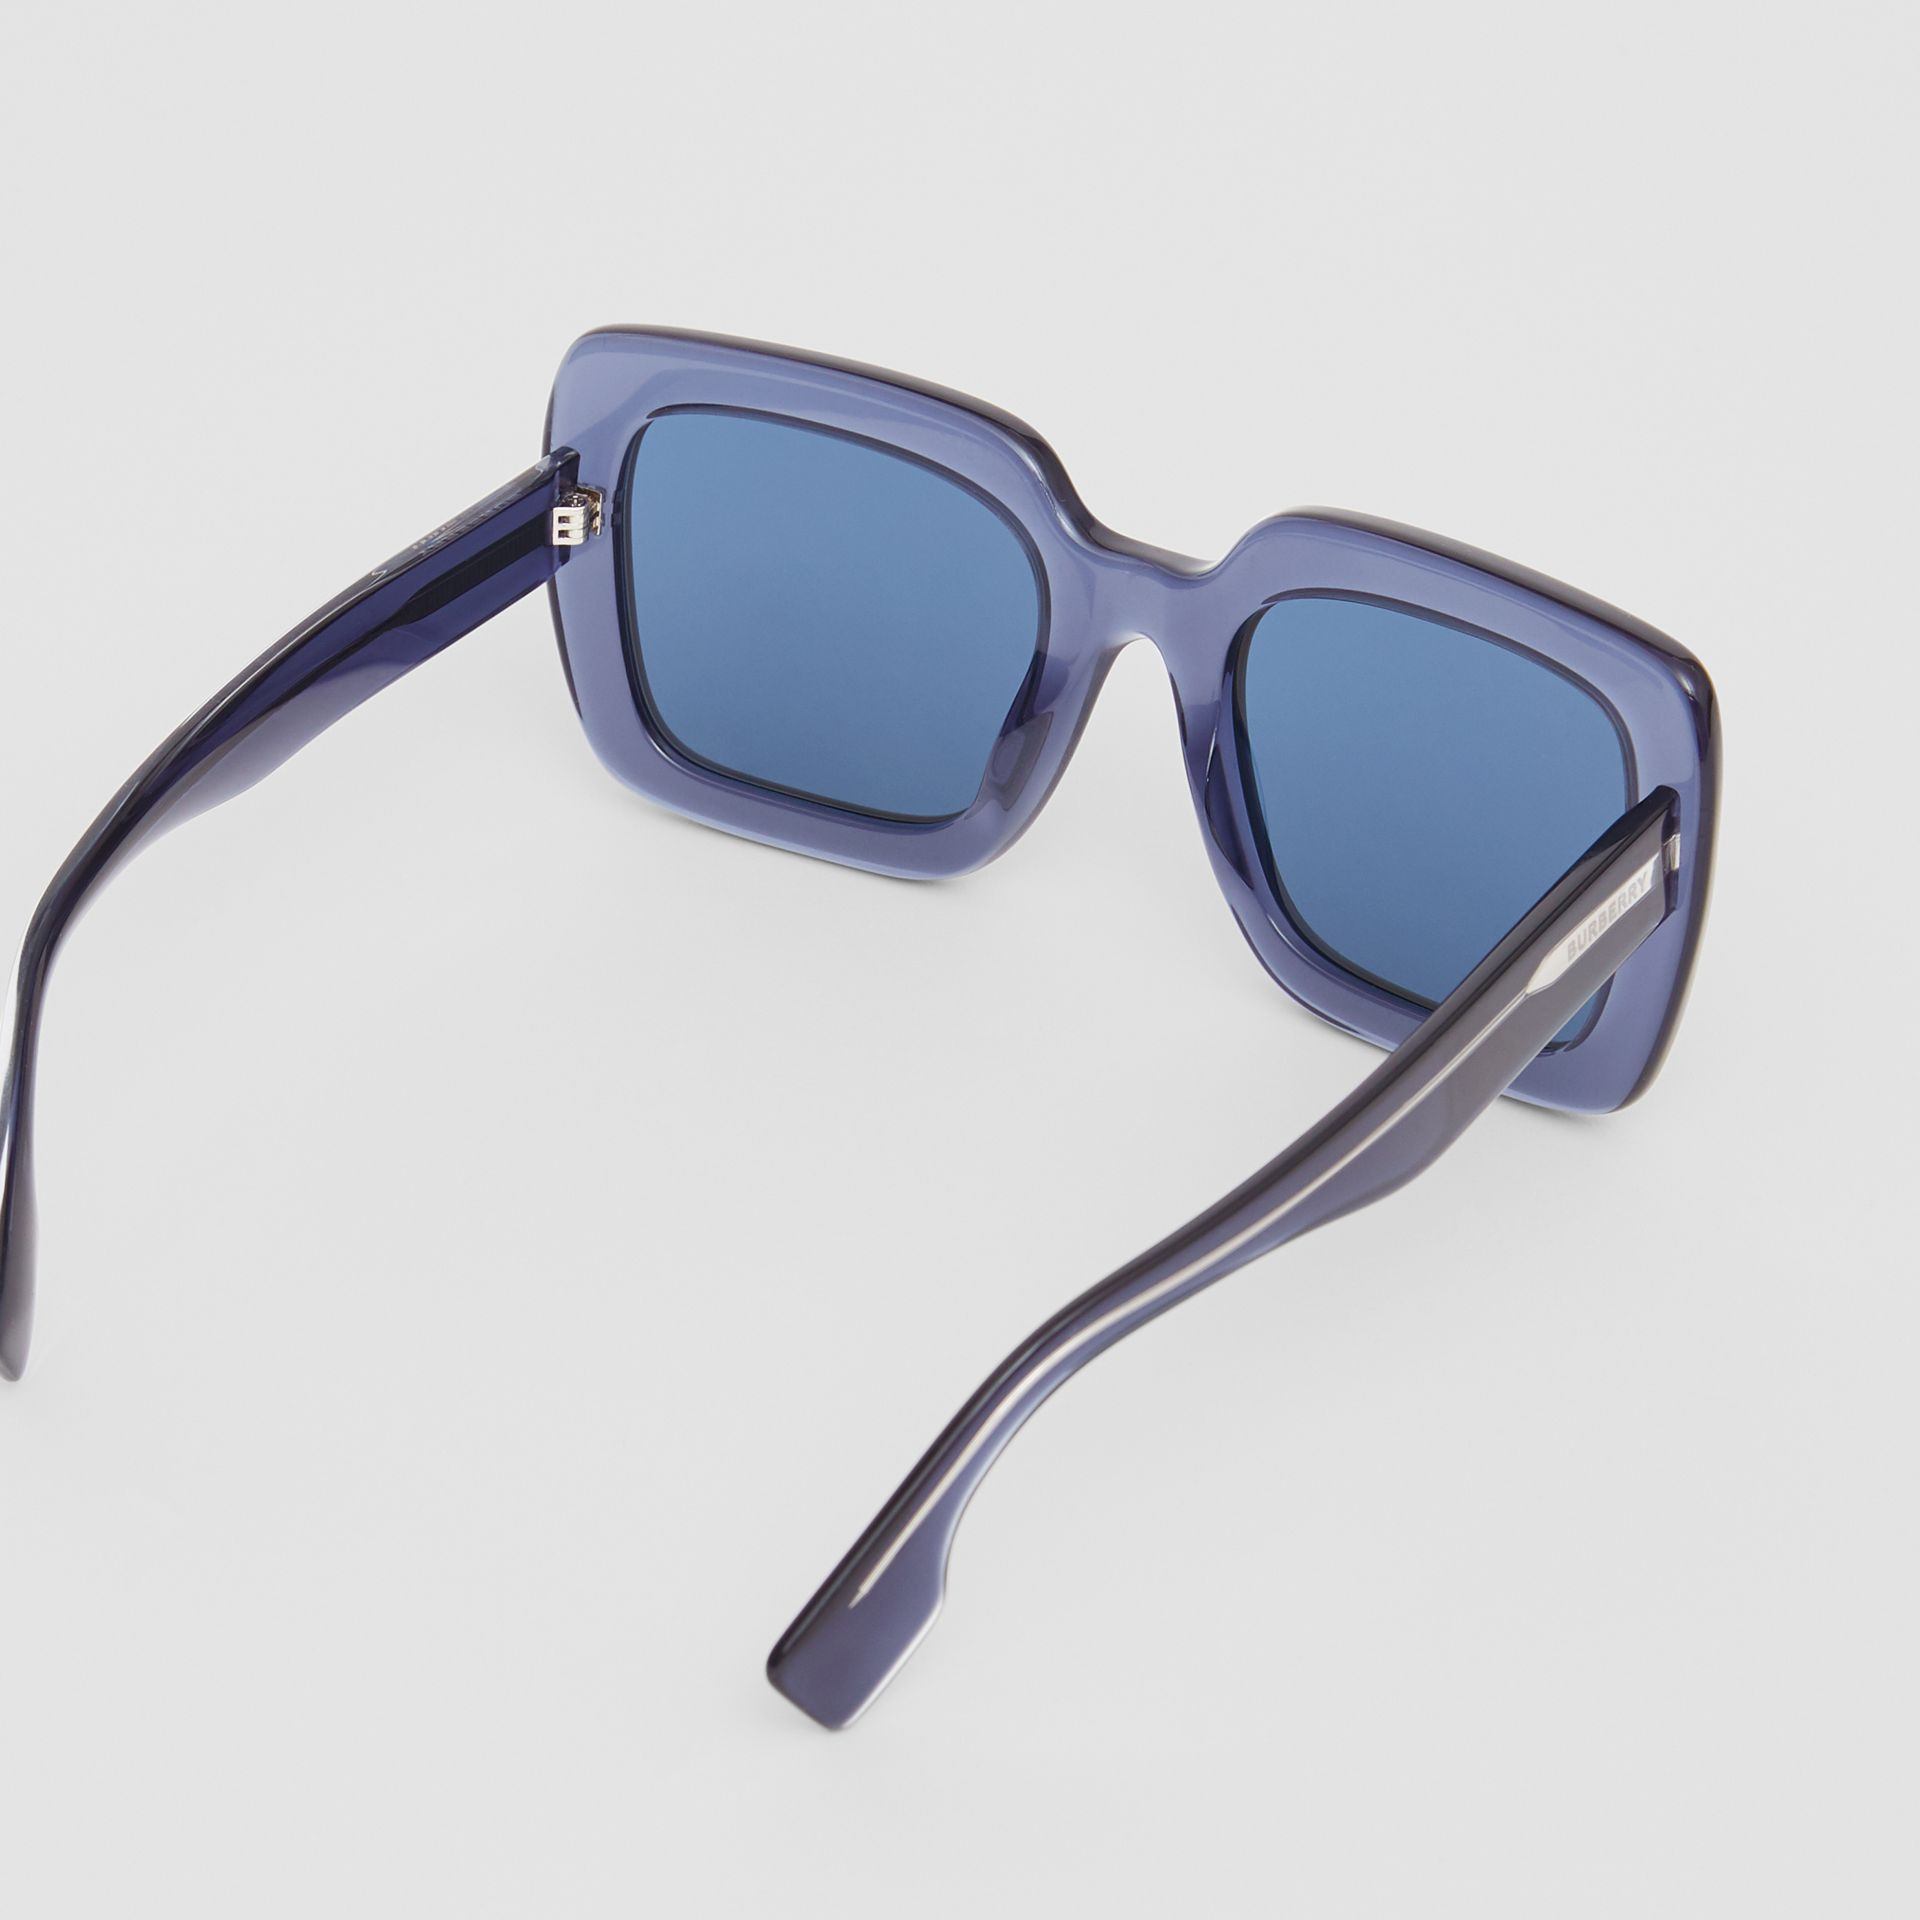 Oversized Square Frame Sunglasses in Blue - Women | Burberry Singapore - gallery image 3